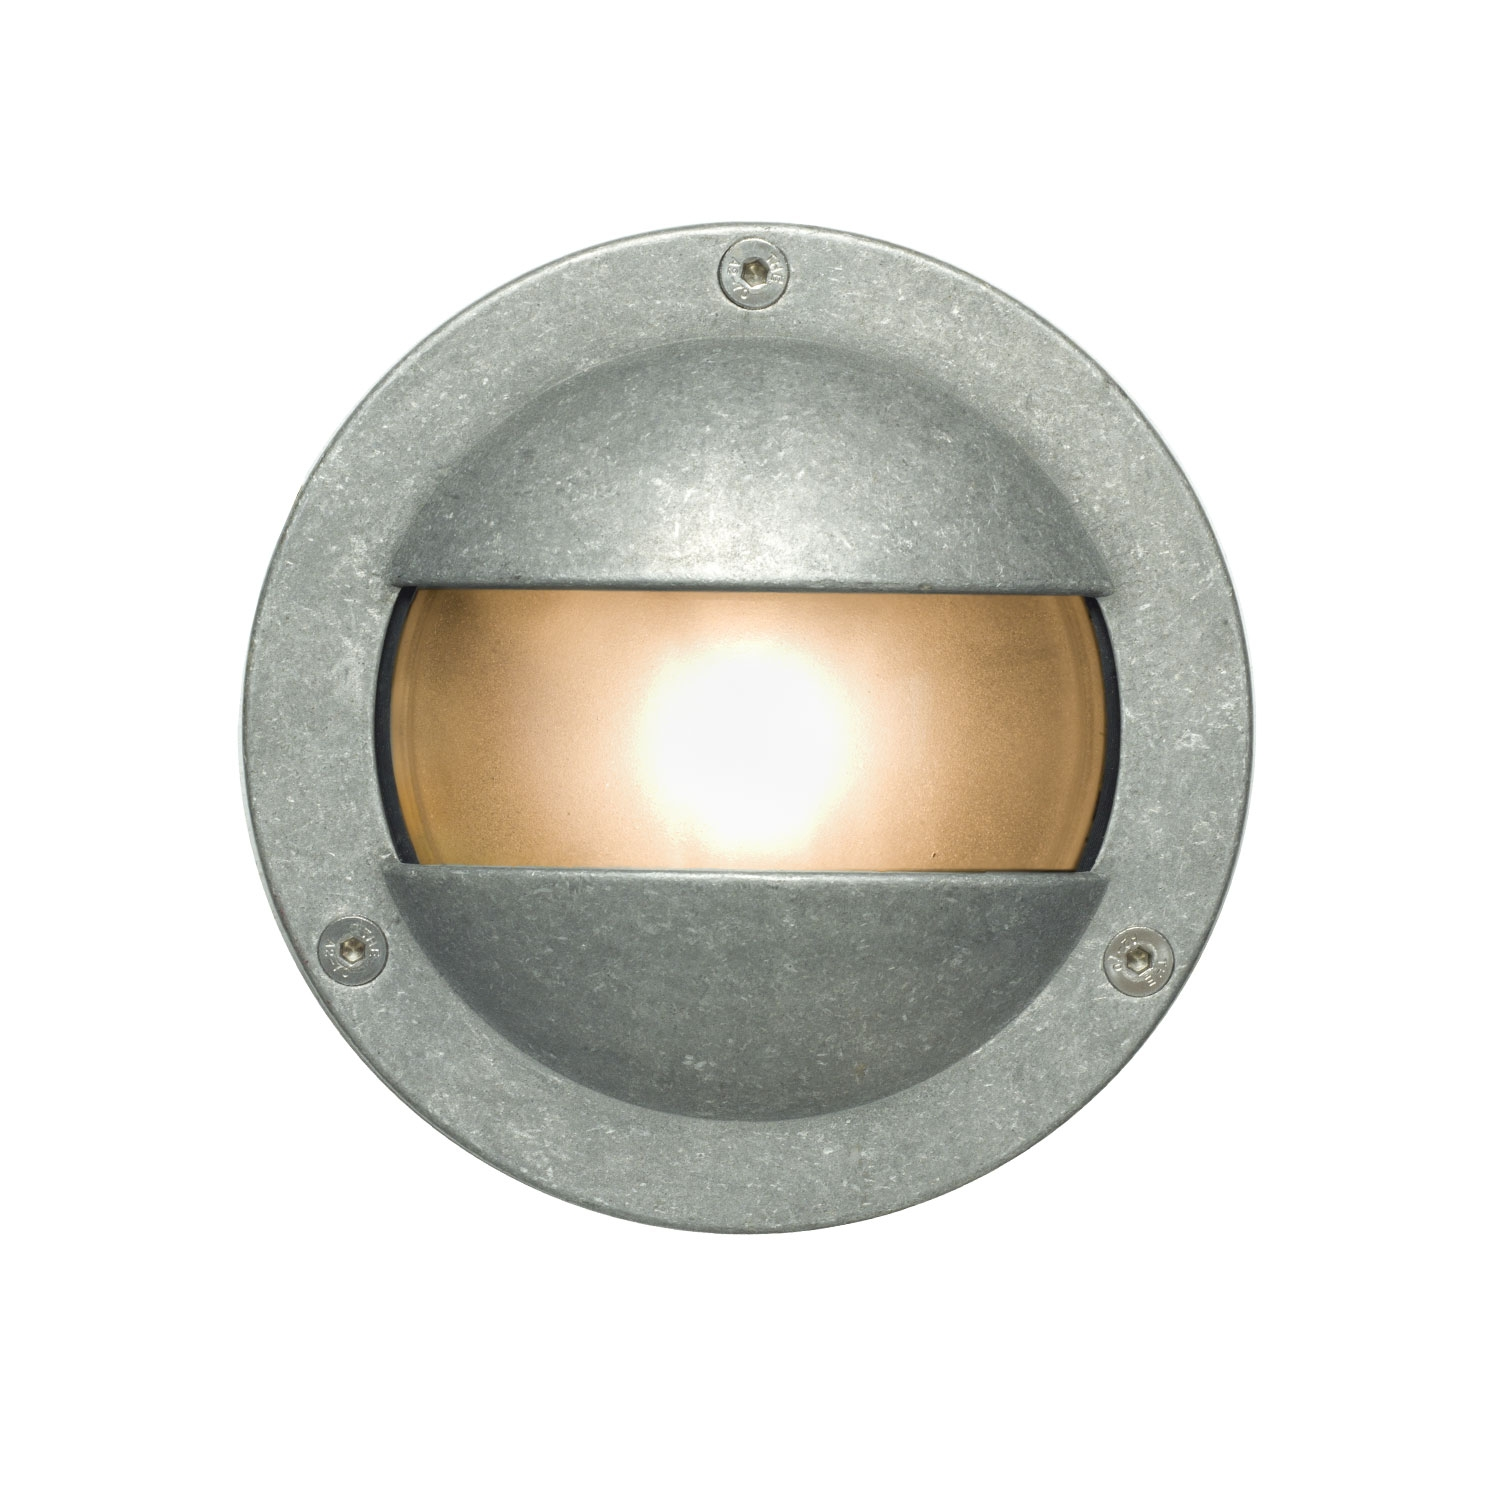 miniature bulkhead light wandleuchte von davey lighting